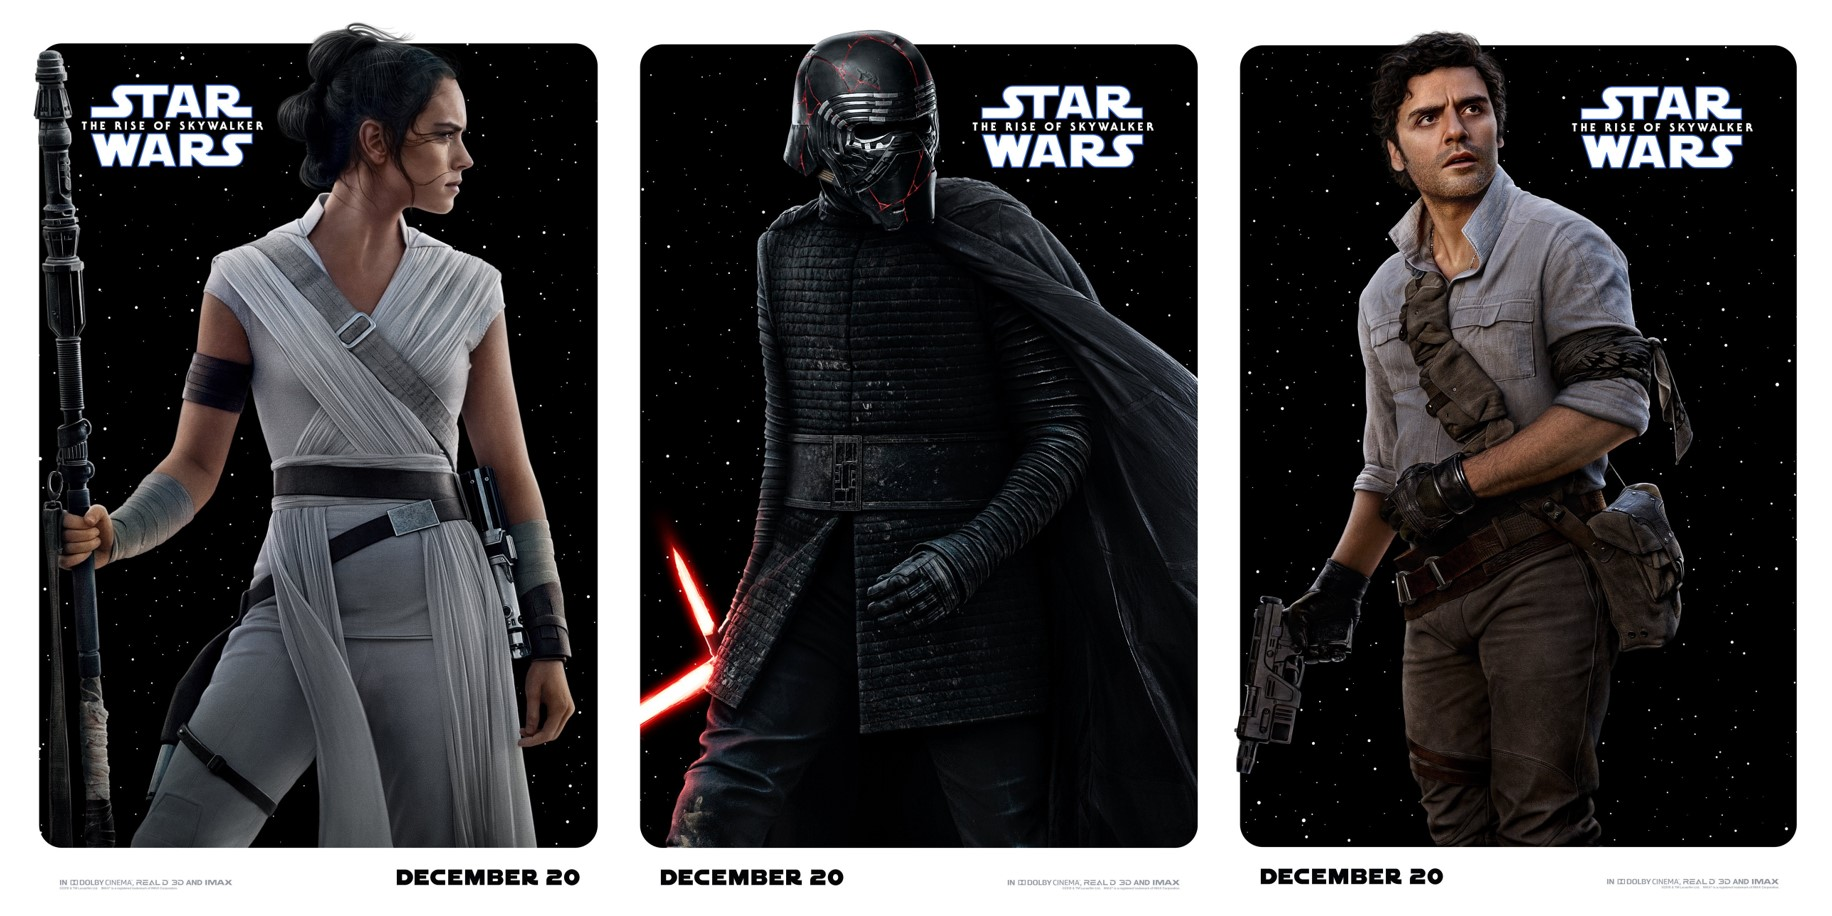 New Rise Of Skywalker Character Posters Have Old Trading Card Style Images I Can T Unsee That Movie Film News And Reviews By Jeff Huston